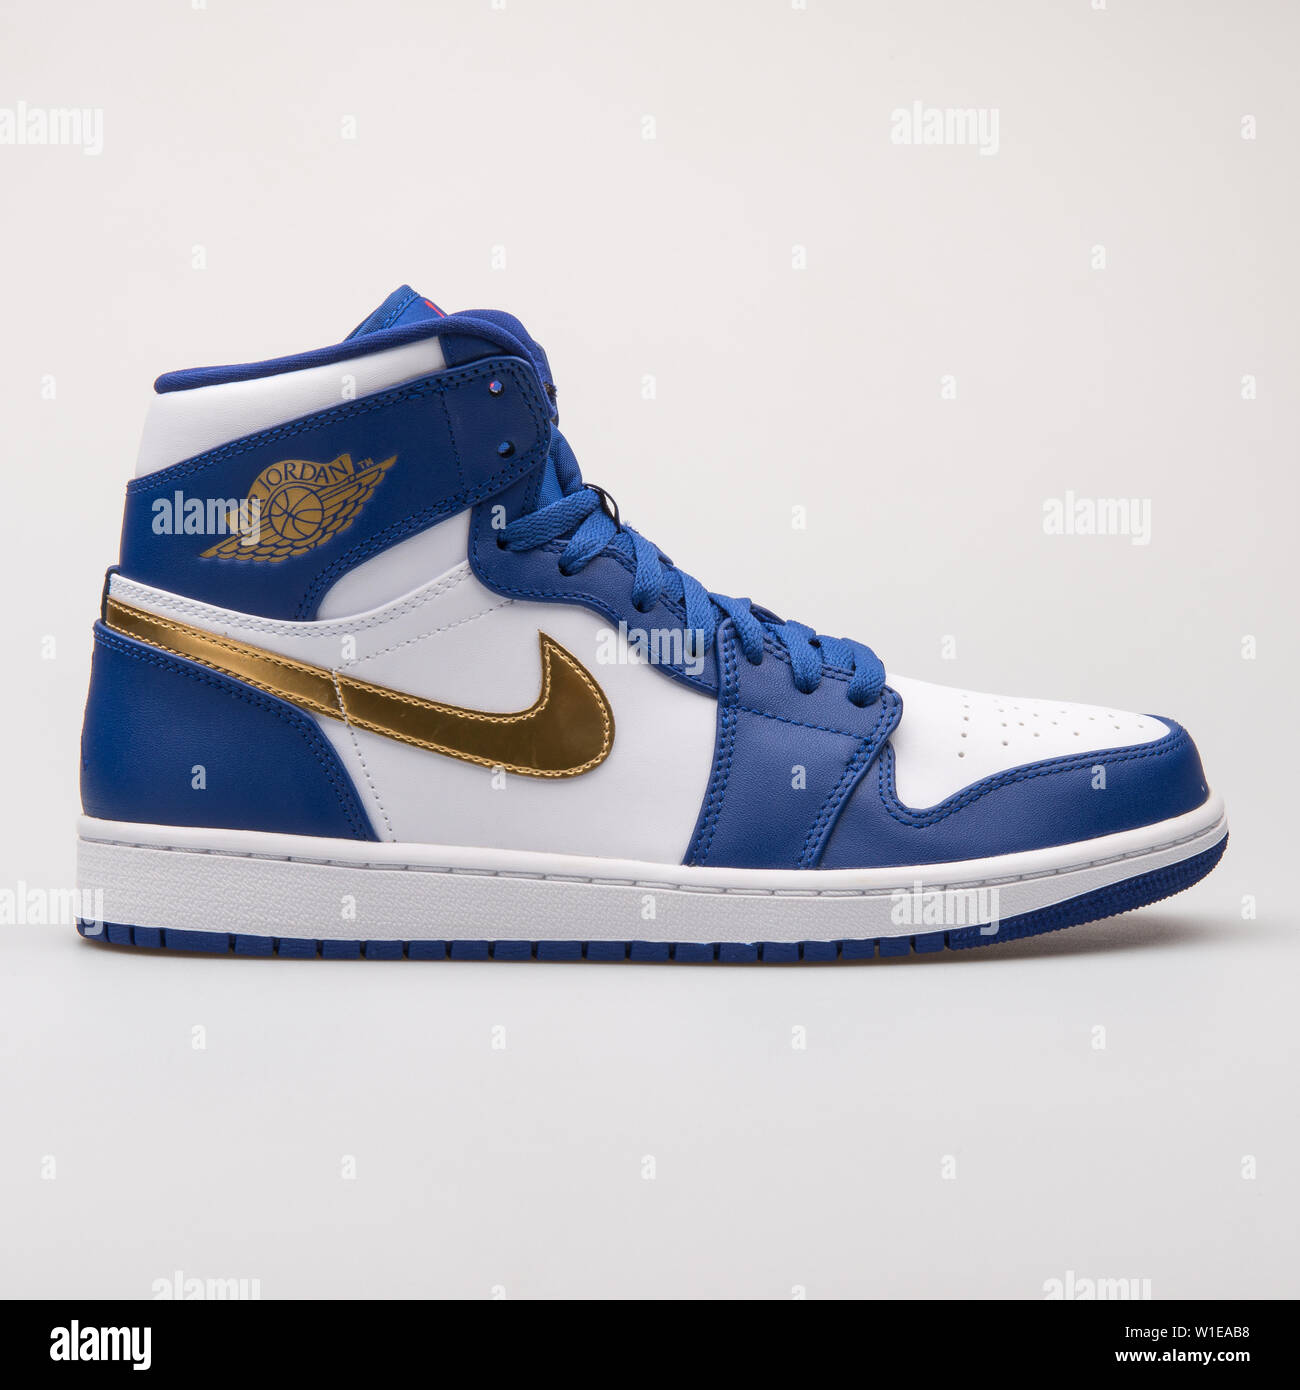 Hacer guirnalda Shuraba  VIENNA, AUSTRIA - JUNE 14, 2017: Nike Air Jordan 1 Retro High blue and  white sneaker isolated on grey background Stock Photo - Alamy